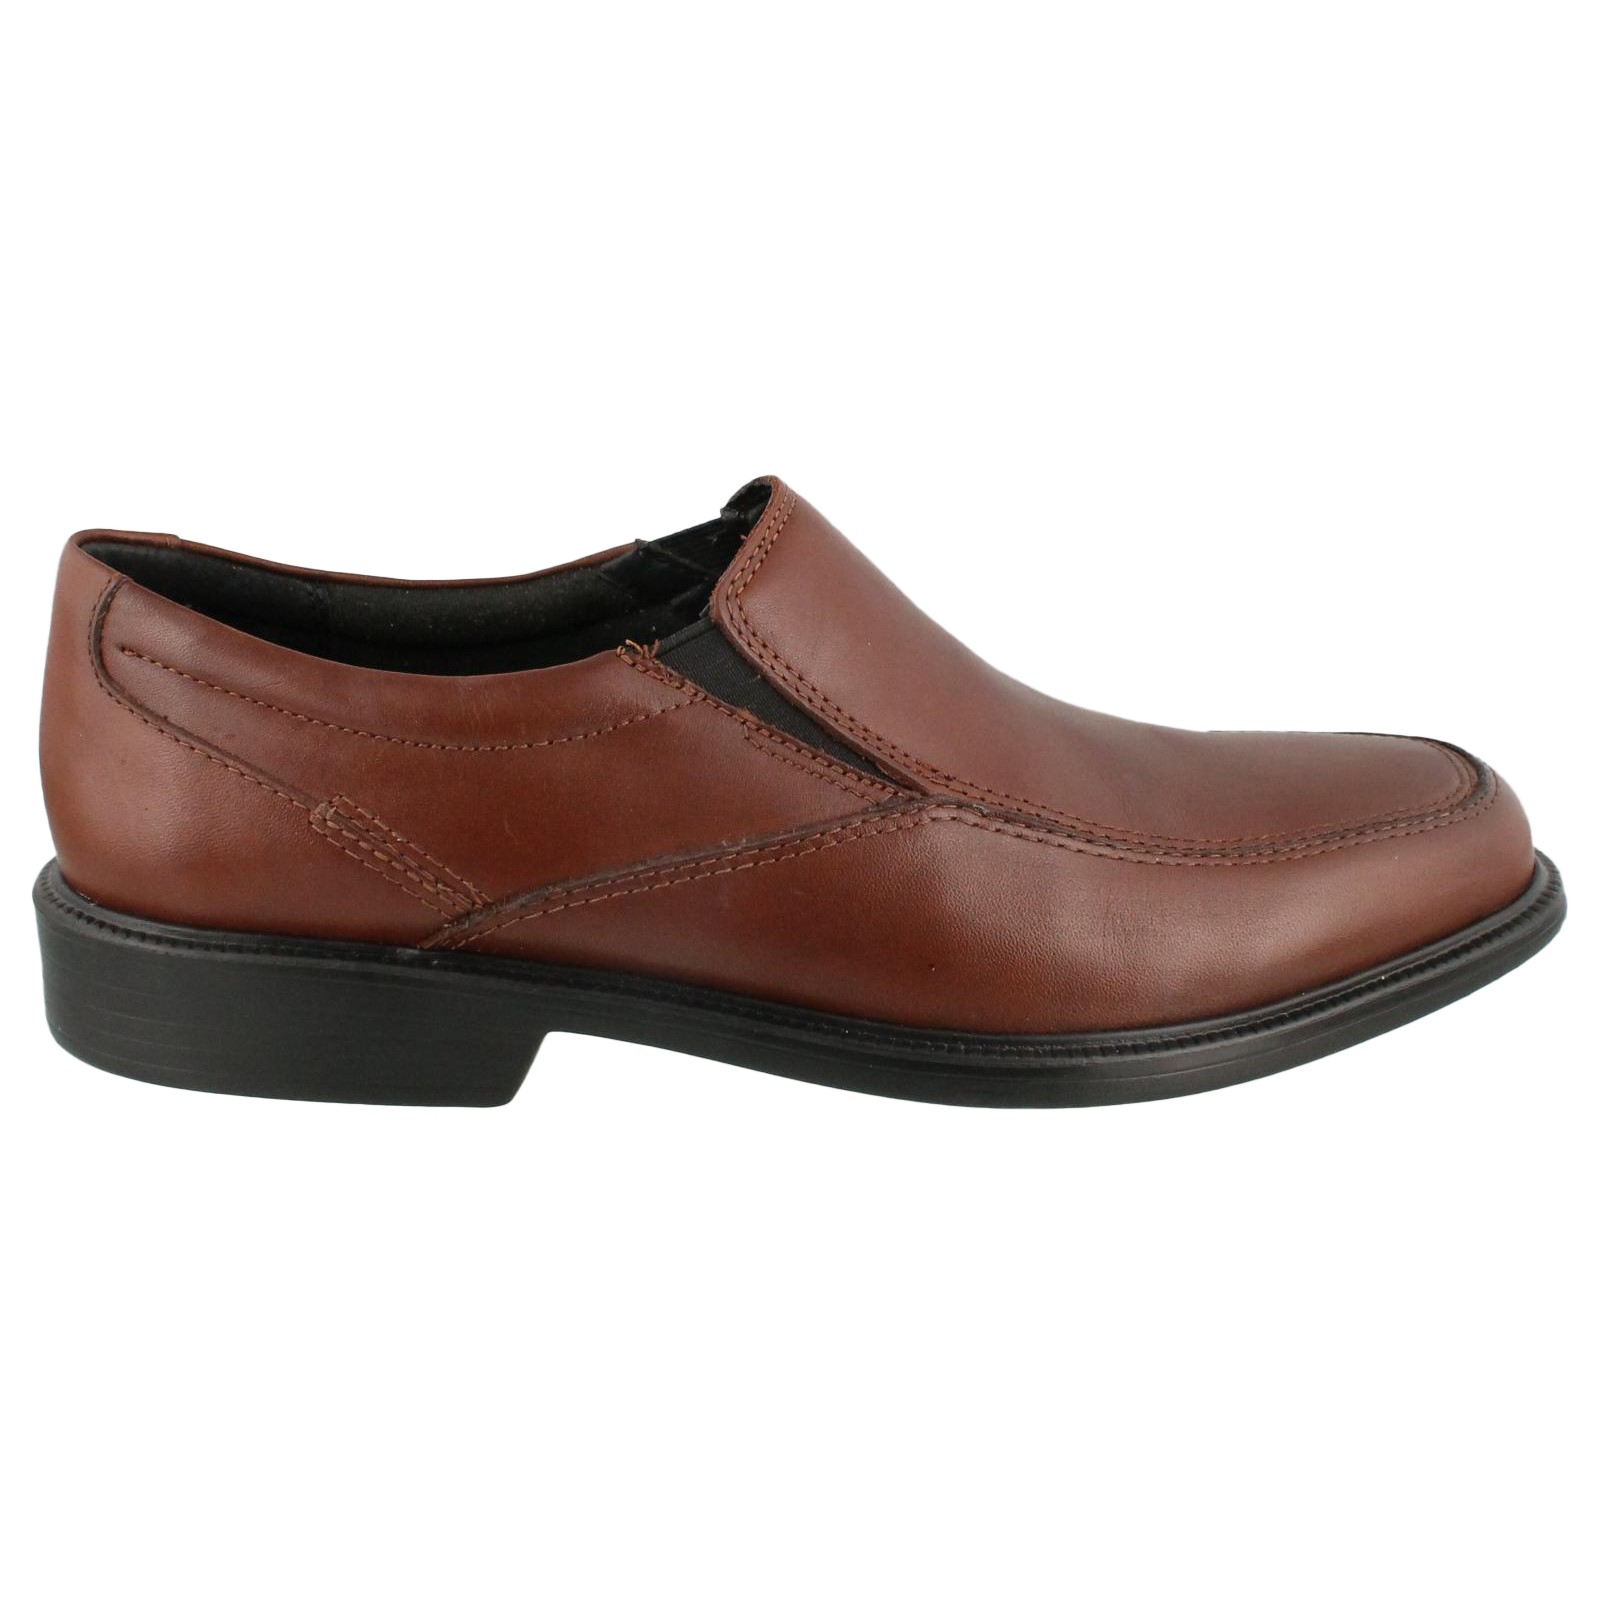 Men's Bostonian, Mendon Slip-on Dress loafer